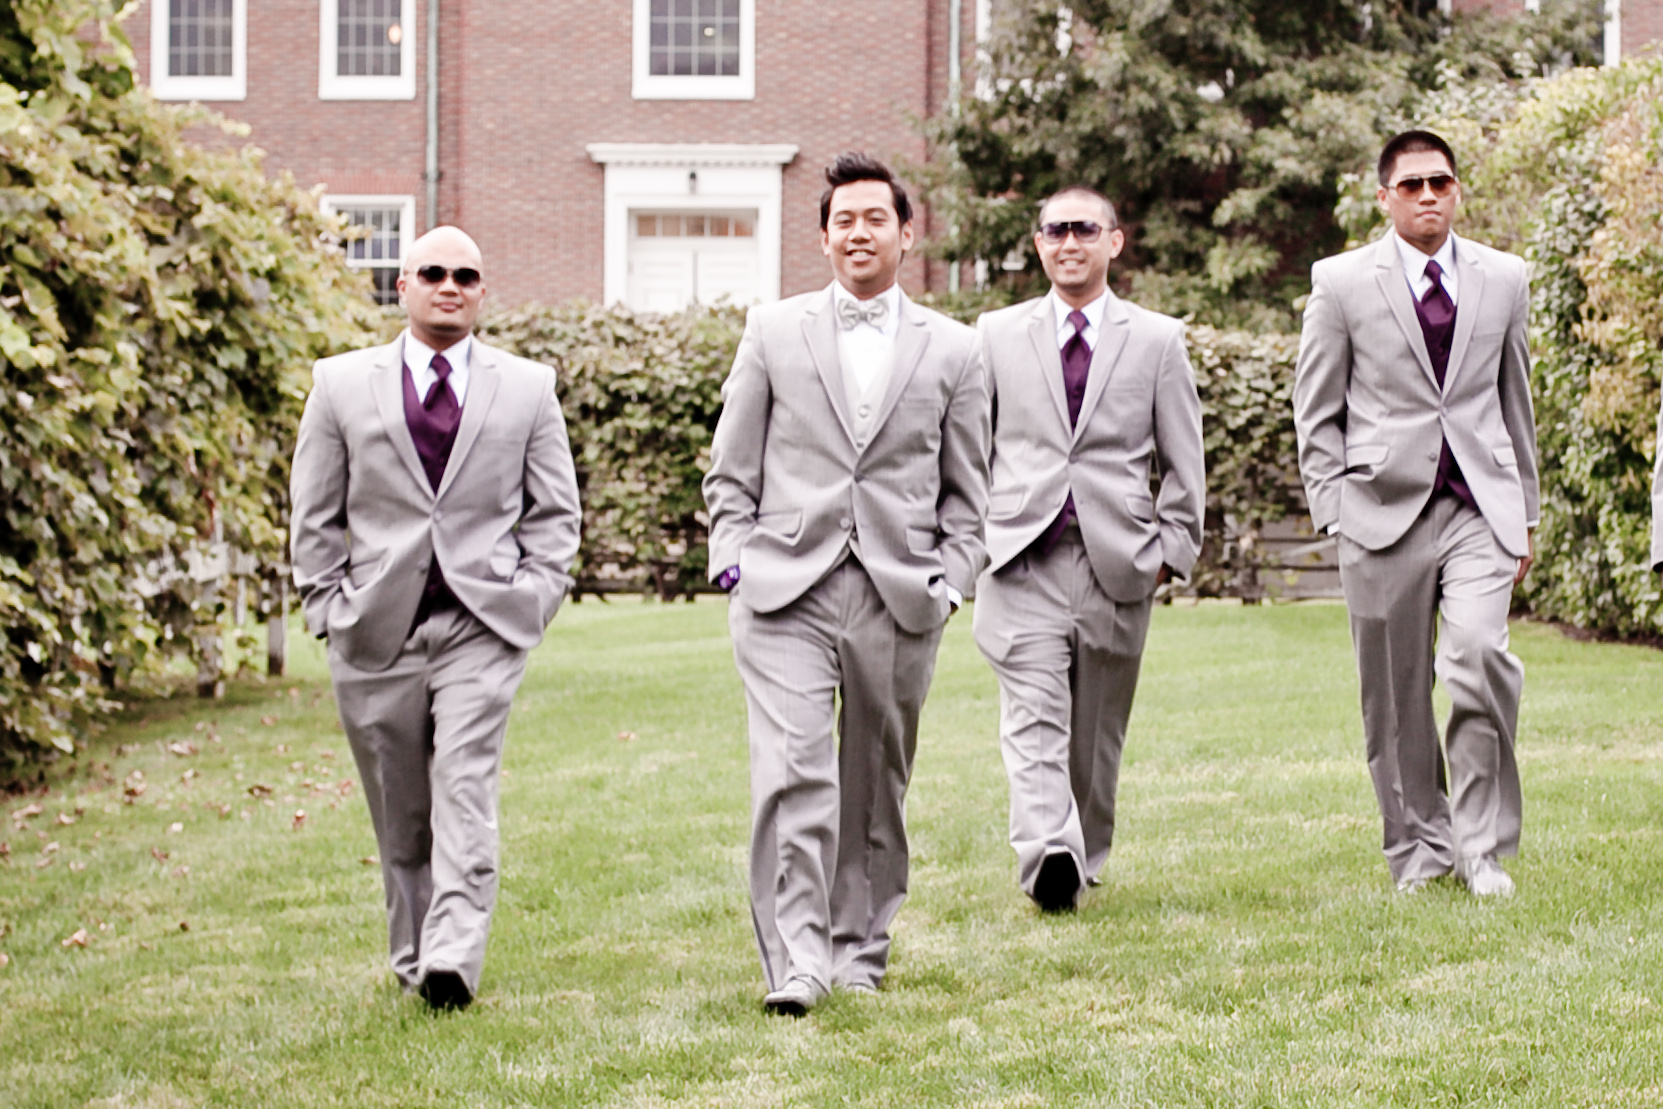 The groom and groomsmen wore grey tuxedos rented from Classic Tuxedo in